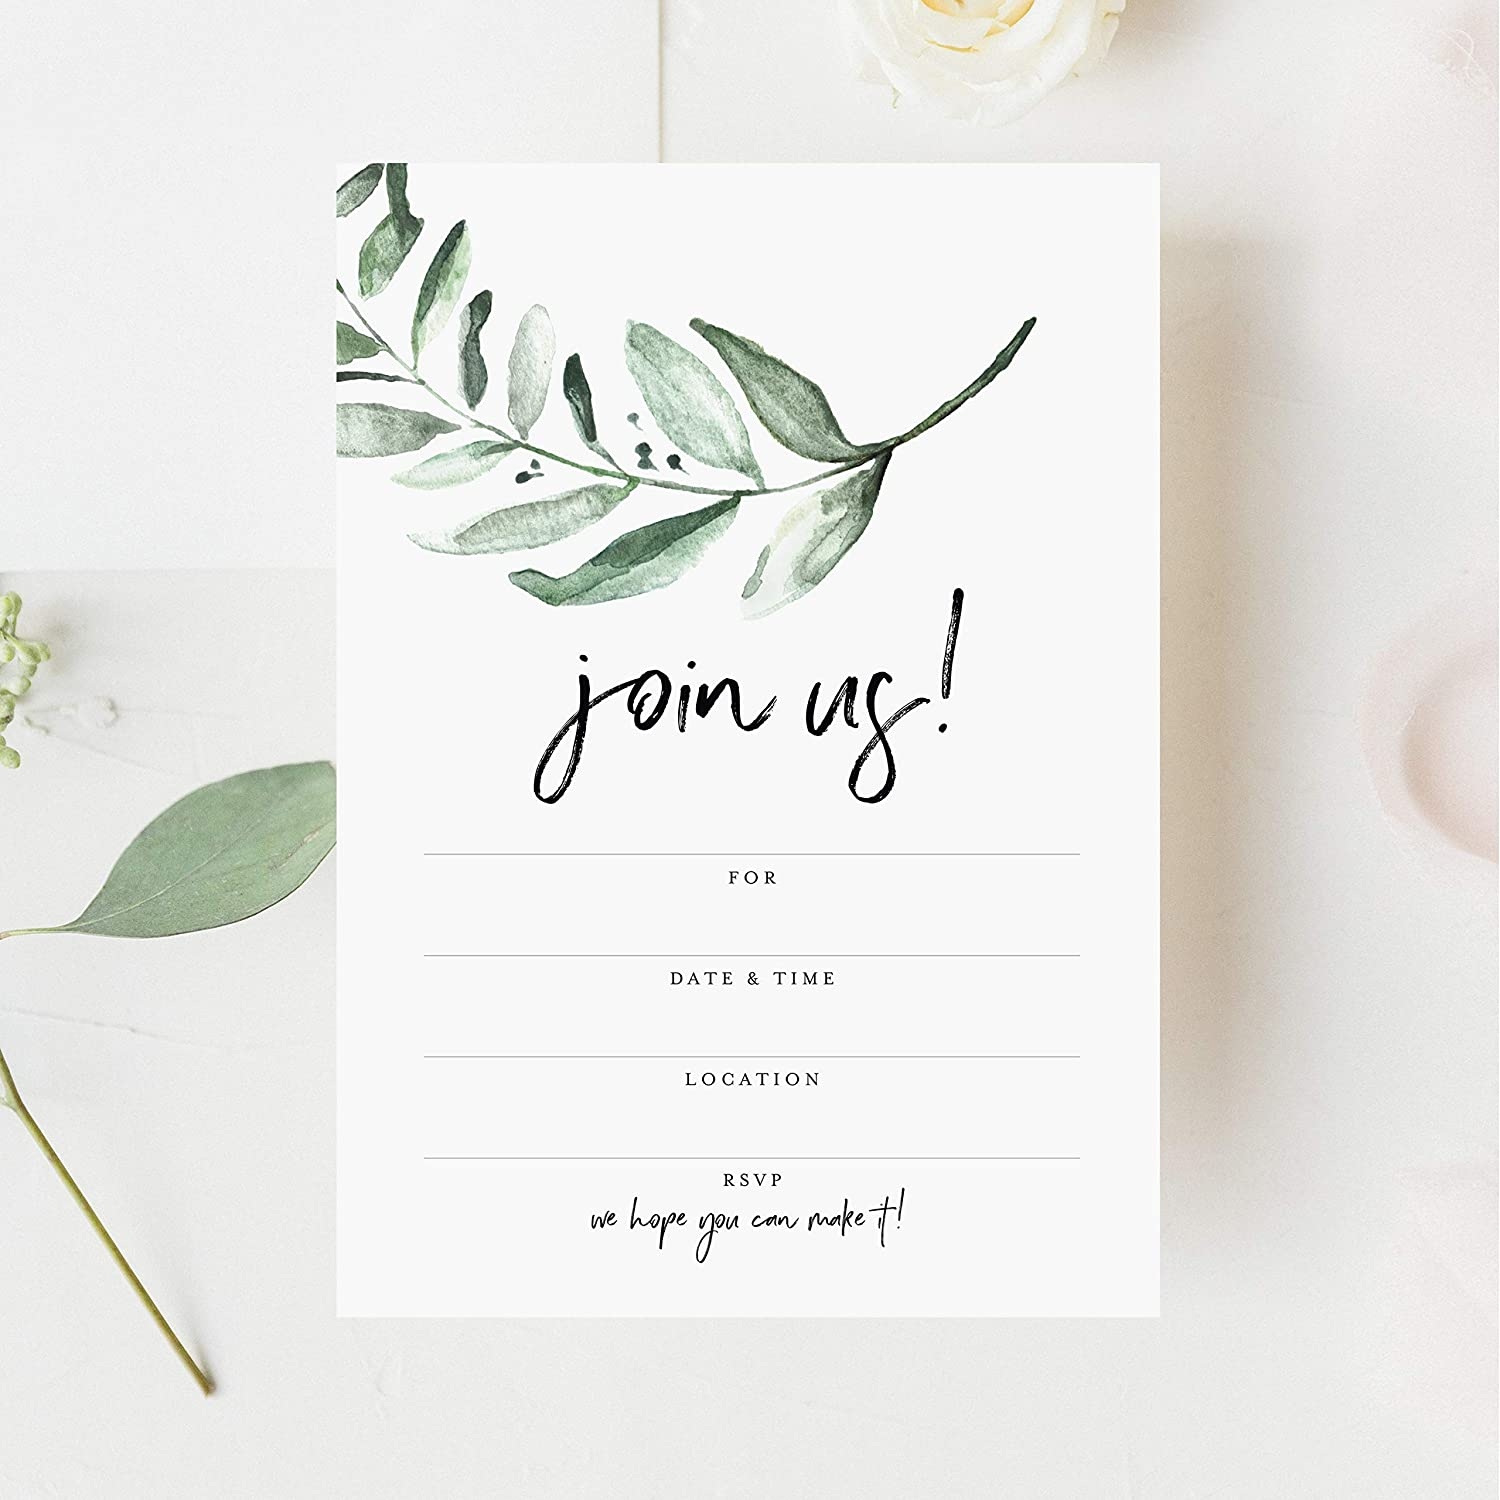 Amazon.com: Bliss Collections 25 Invitations with Envelopes for All  Occasions, Greenery Invites Perfect for: Weddings, Bridal Showers,  Engagement, Birthday Party or Special Event, Fill in Rustic Invites:  Kitchen & Dining